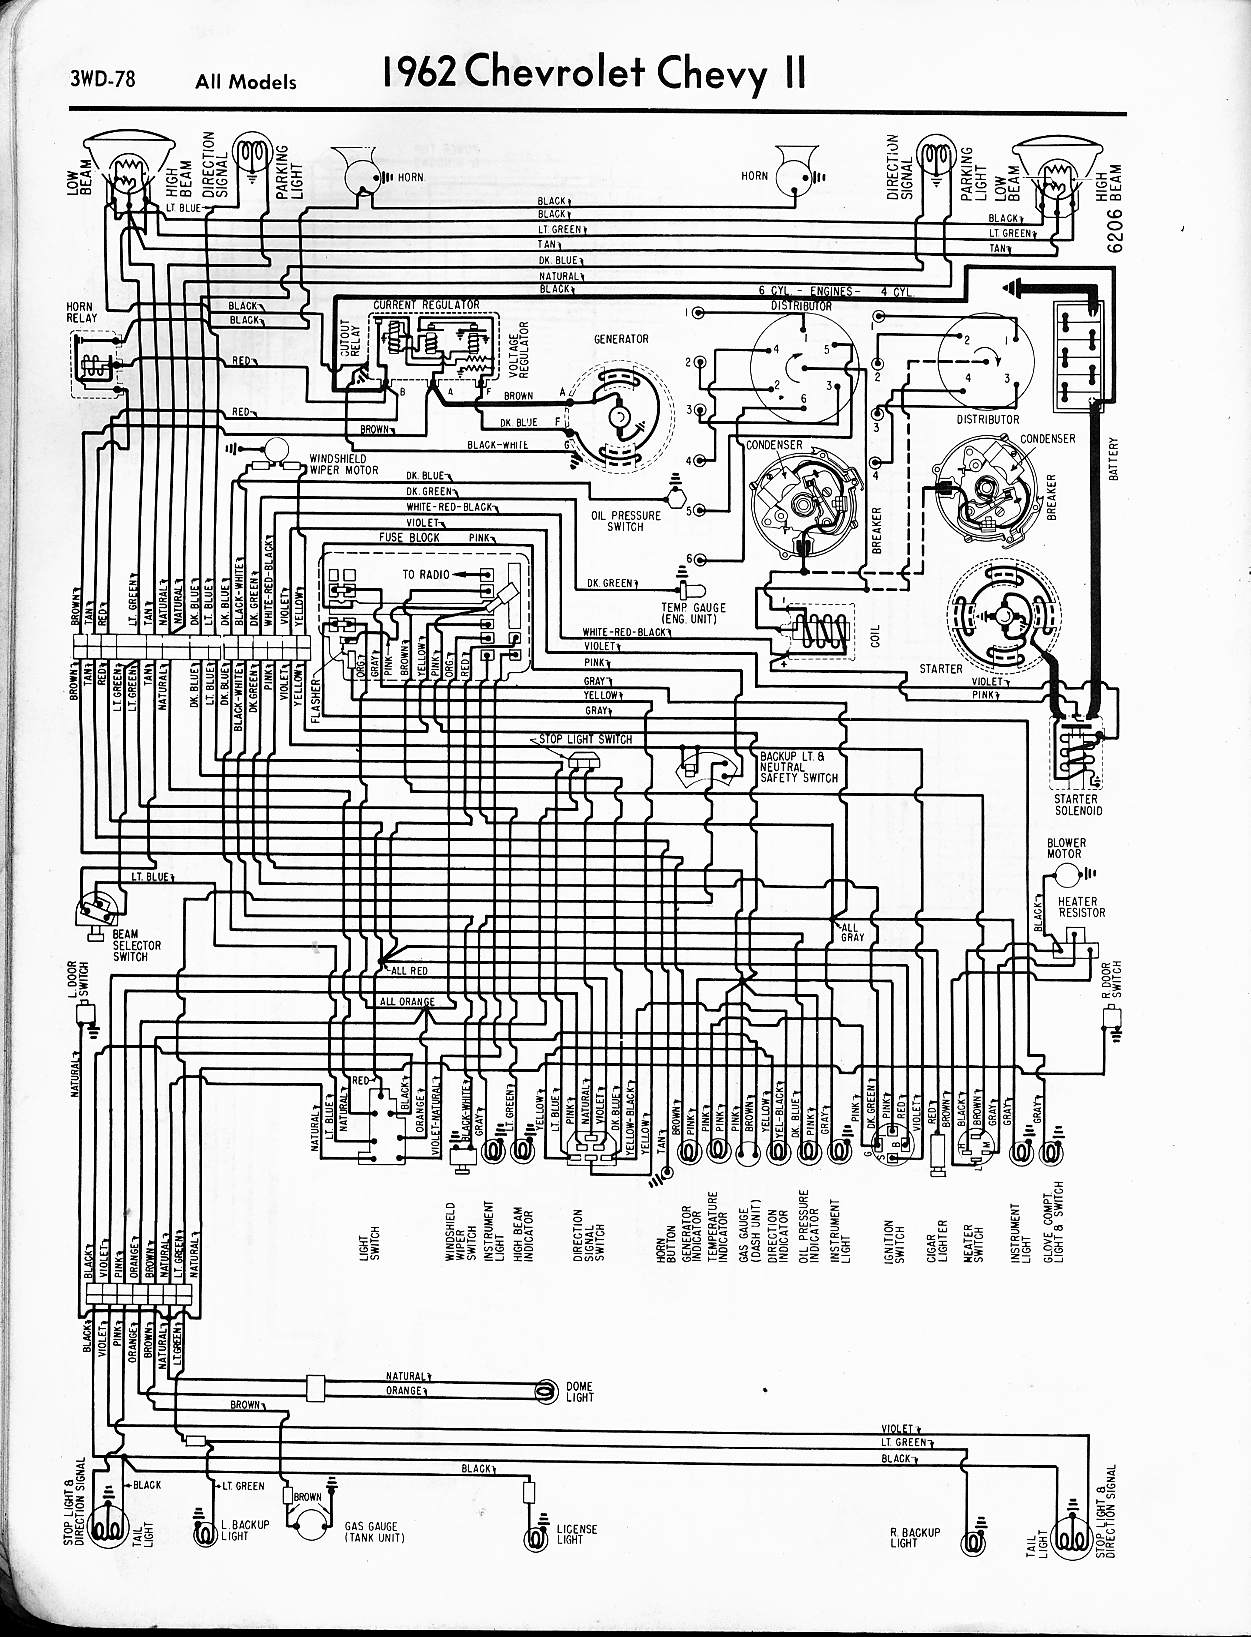 1966 Impala Convertible Wiring Diagram Guide And Troubleshooting Chevrolet 1967 Free Detailed Rh 15 7 Ocotillo Paysage Com Chevy